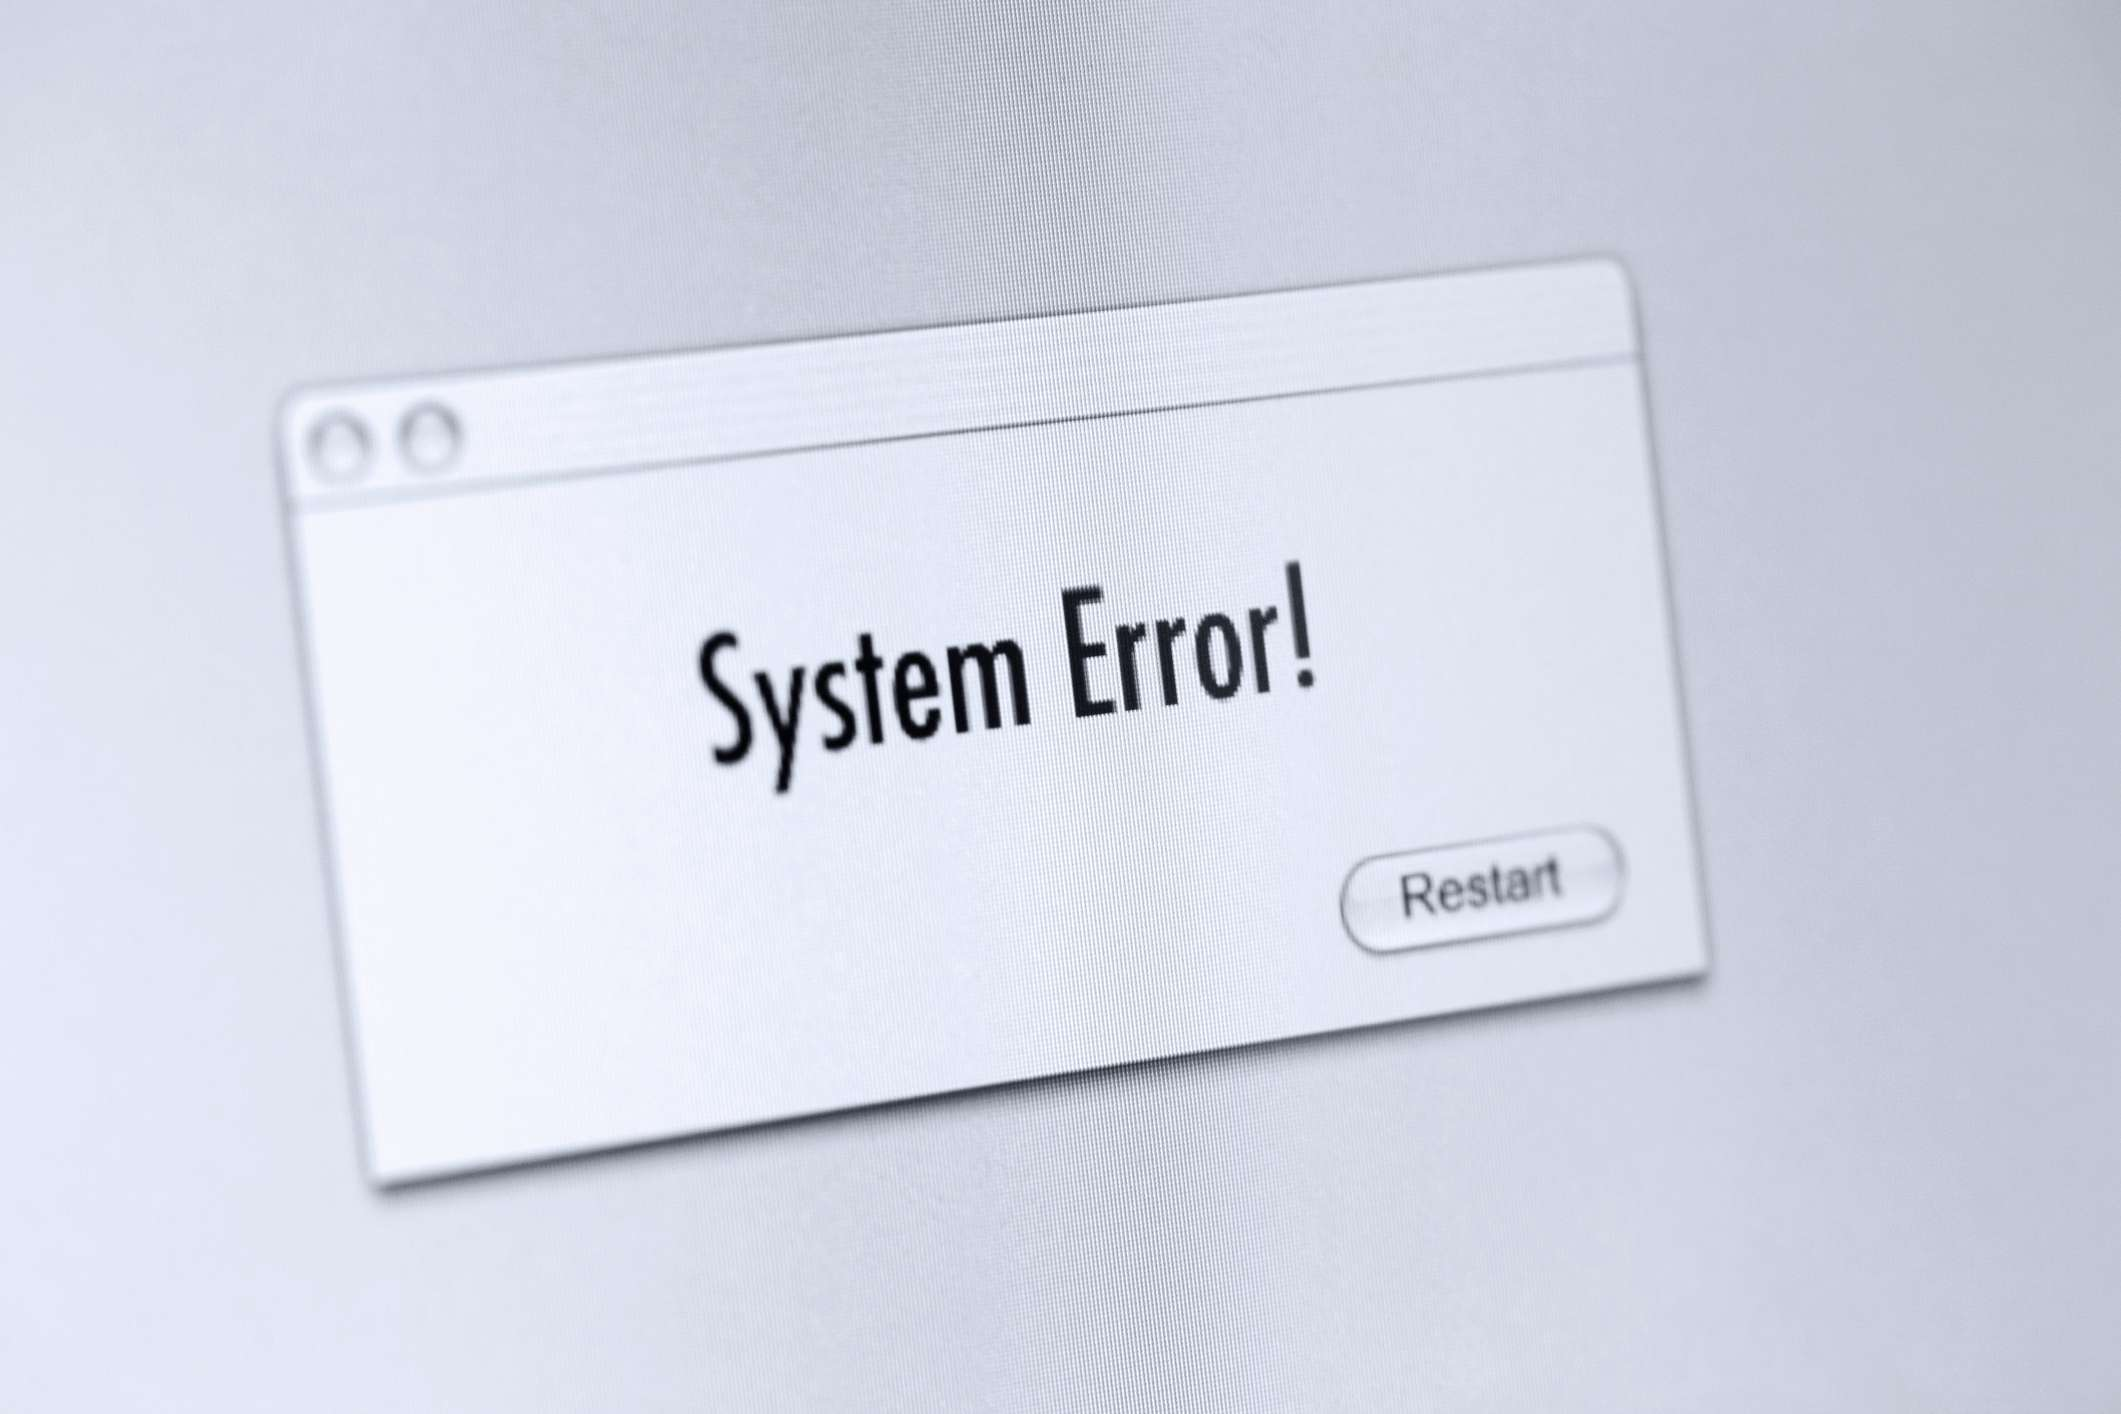 How to Stop Windows Error Messages on Your PC